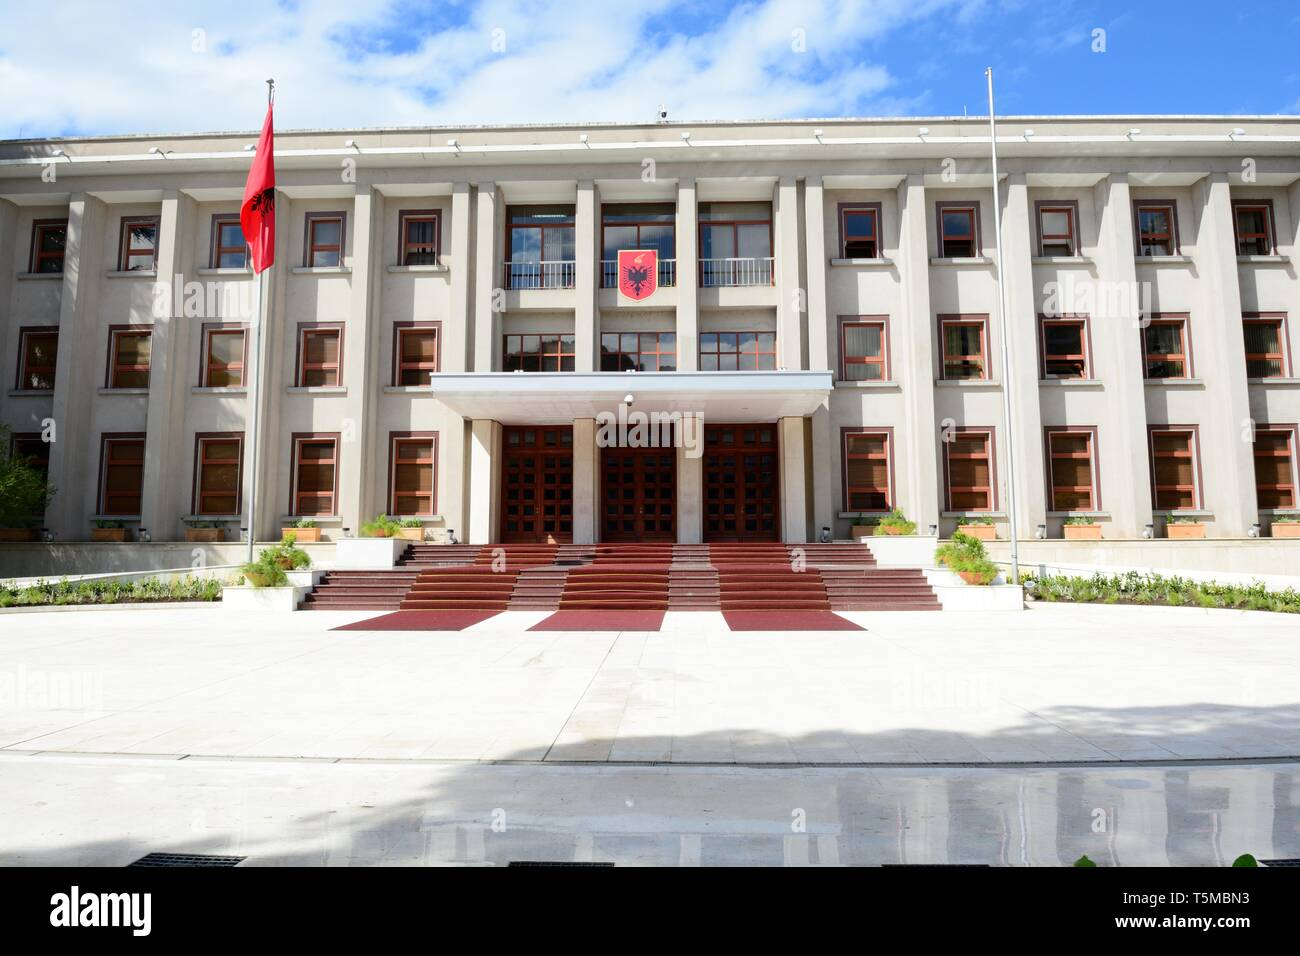 The Presidential Palace of Tirana Albania - Stock Image